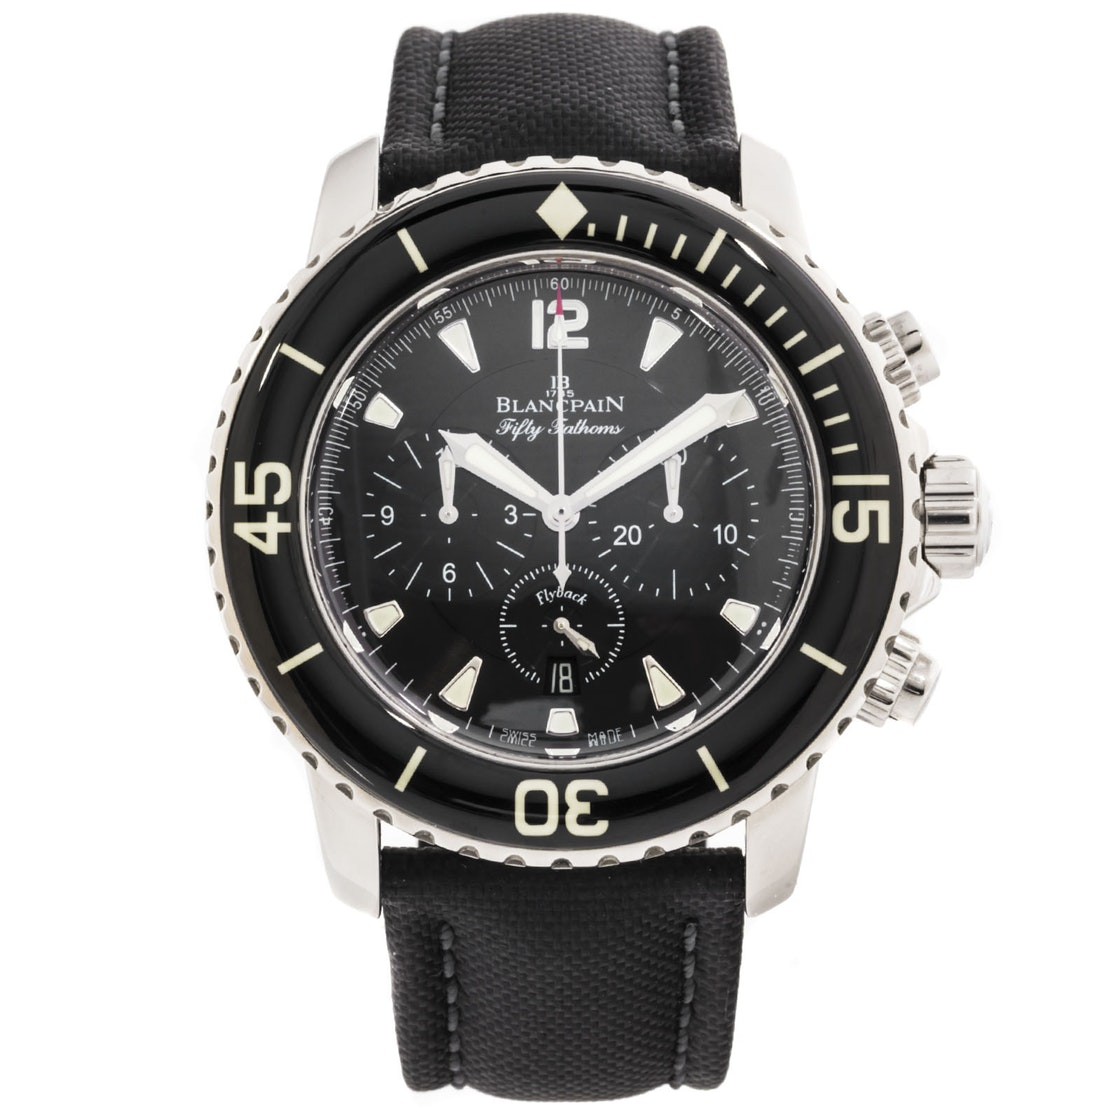 Blancpain Fifty Fathoms Flyback Chronograph: The Cadillac of Divers